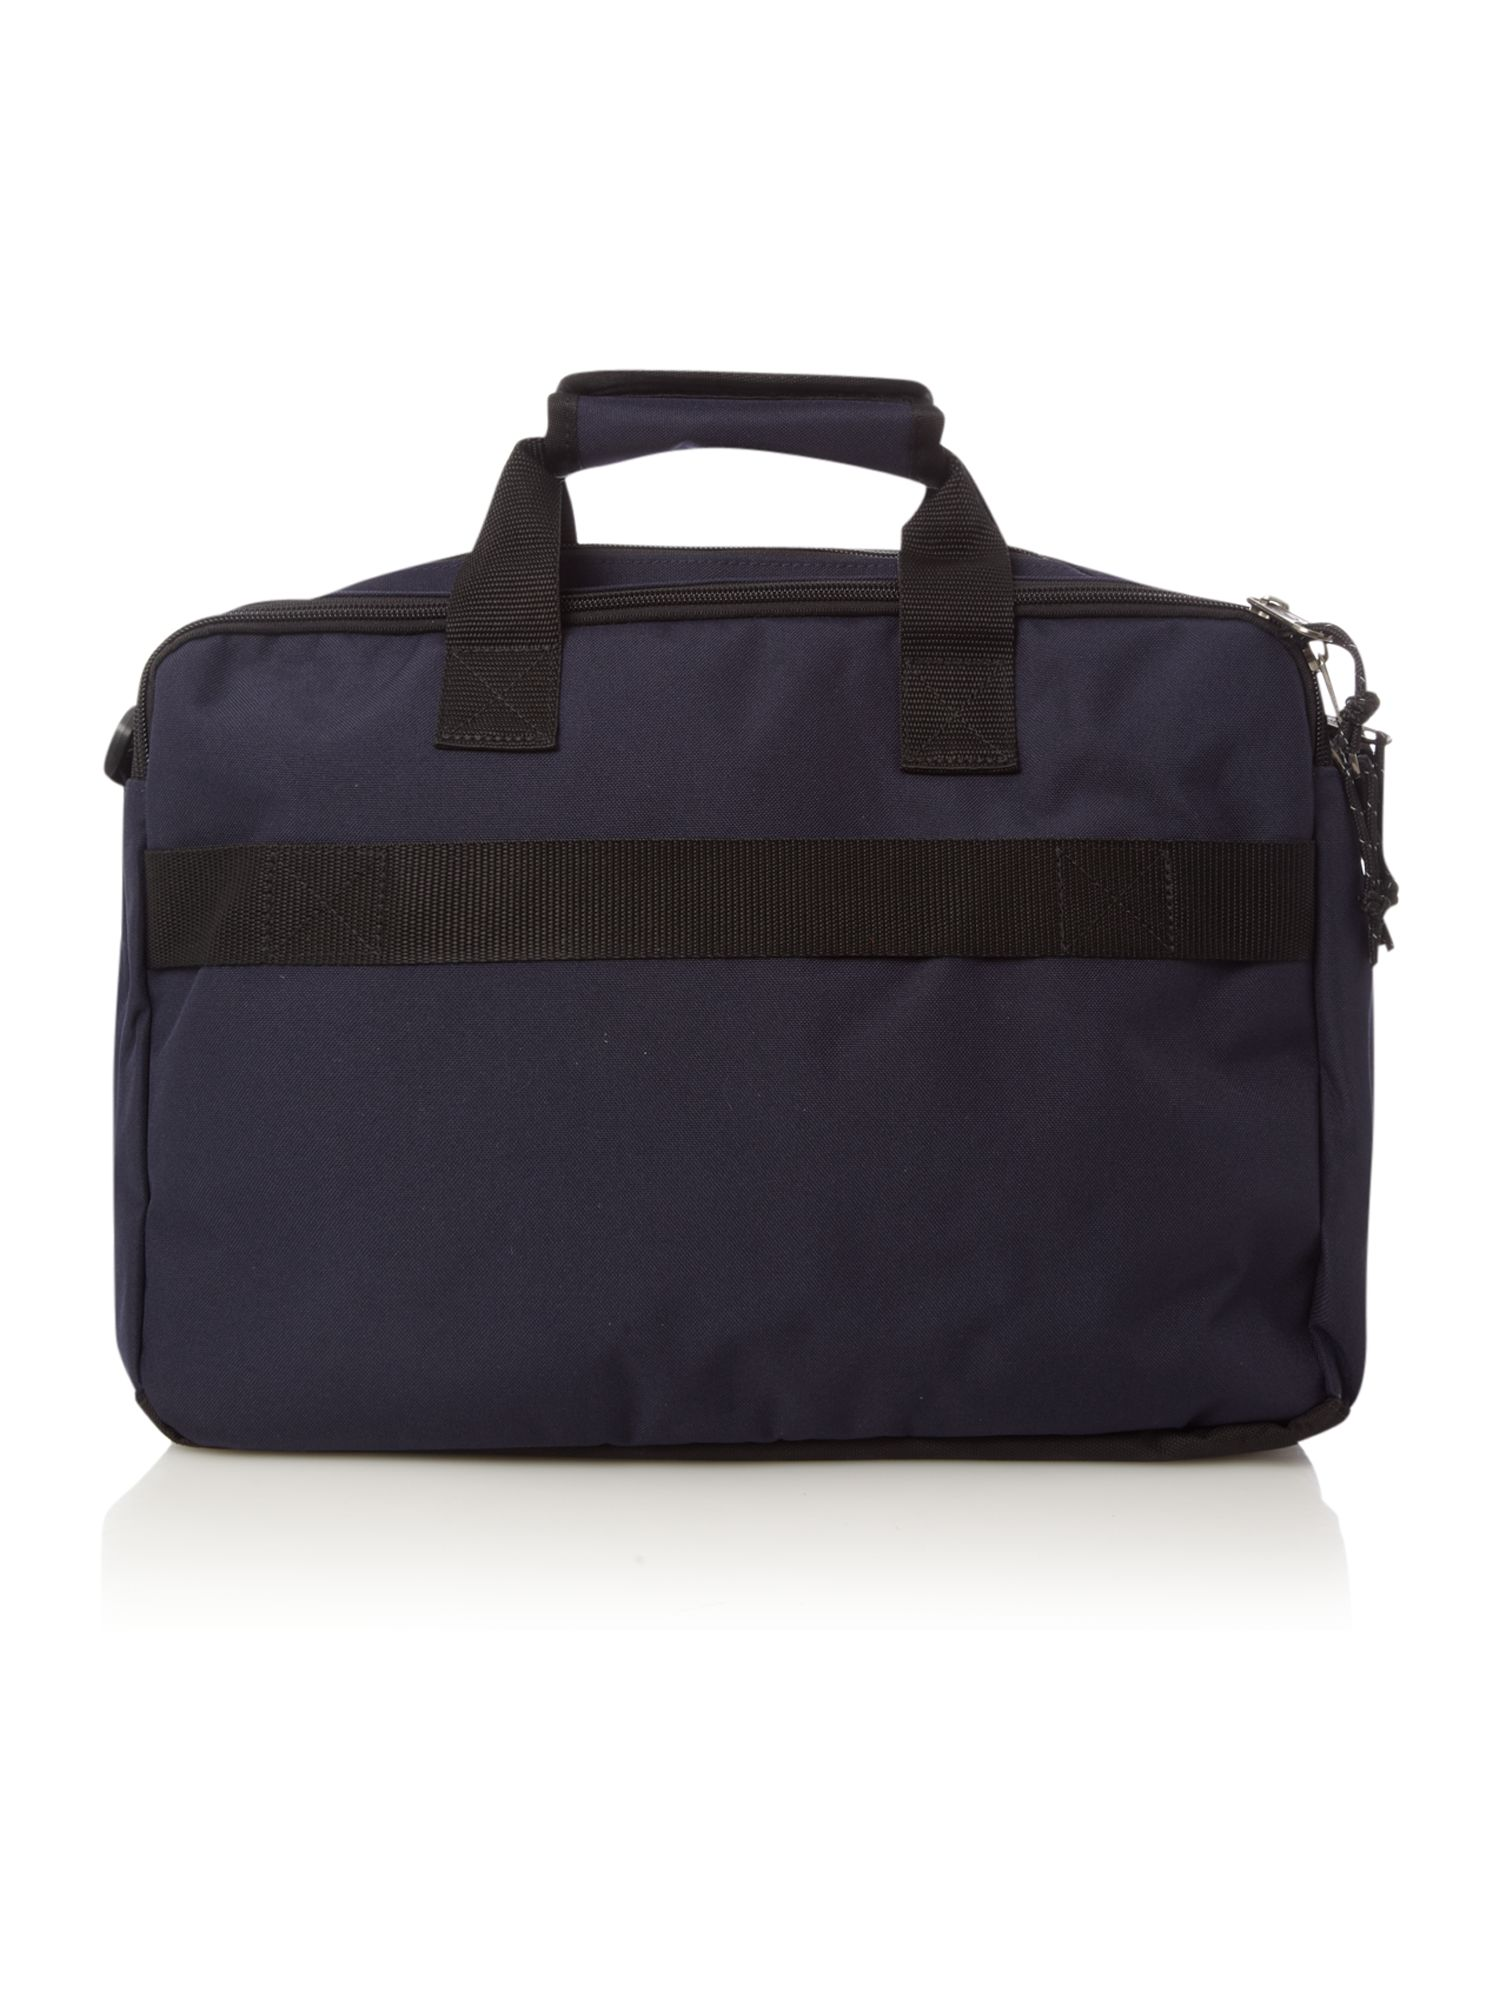 Bokler Messenger Bag Navy